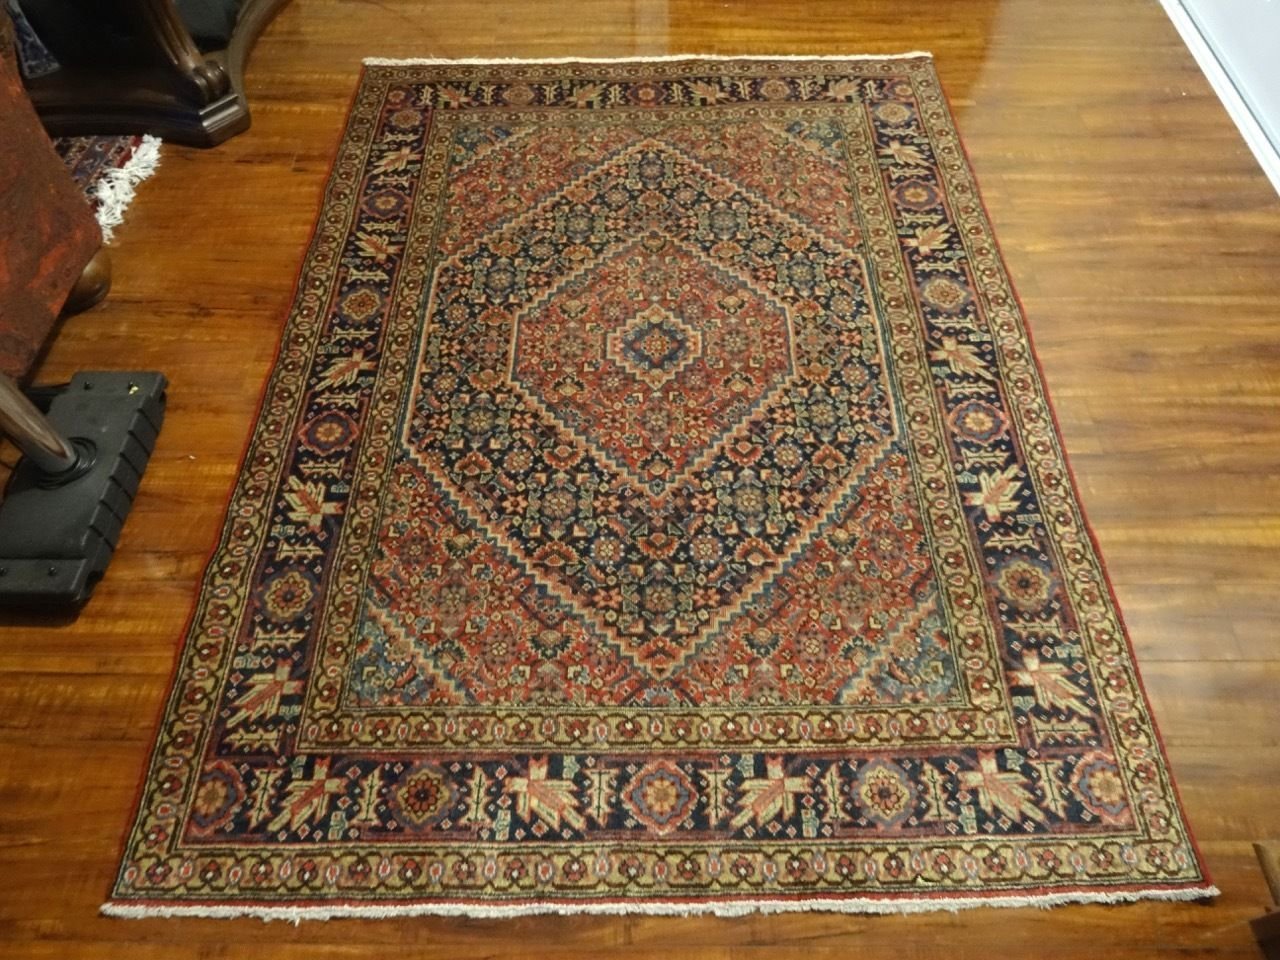 Exquisite Circa 1900 Handmade Hand-knotted Persian Tabriz Rug. Clean Rug, Ready to be Treasured! Excellent Condition for age. Short Even Pile. Amazingly Preserved by Collector! Hand-Spun All Natural Wool Pile and Cotton Foundation. | eBay!